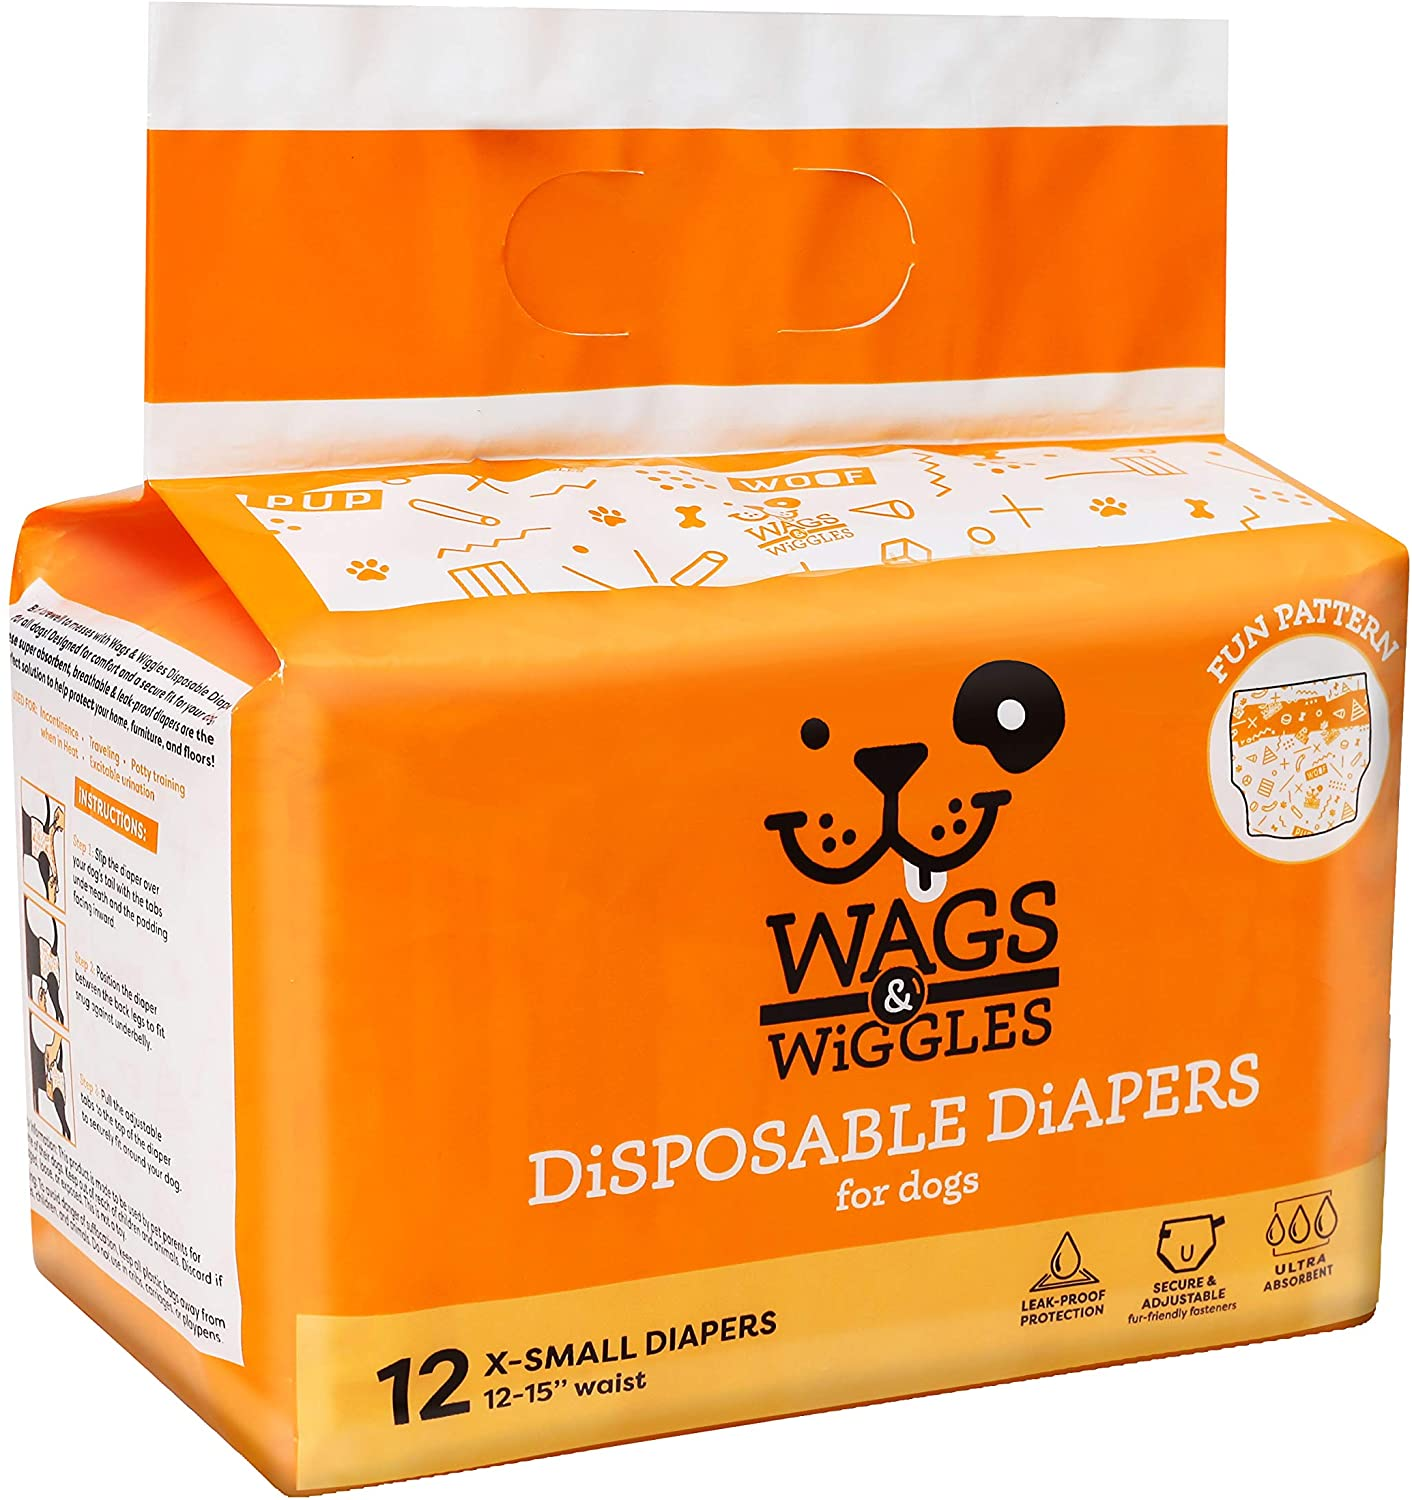 Wags & Wiggles Female Dog Diapers and Male Dog Wraps   Disposable Female Dog Diapers and Disposable Male Dog Wraps   Super Absorbent Dog Diapers Available in a Variety of Sizes